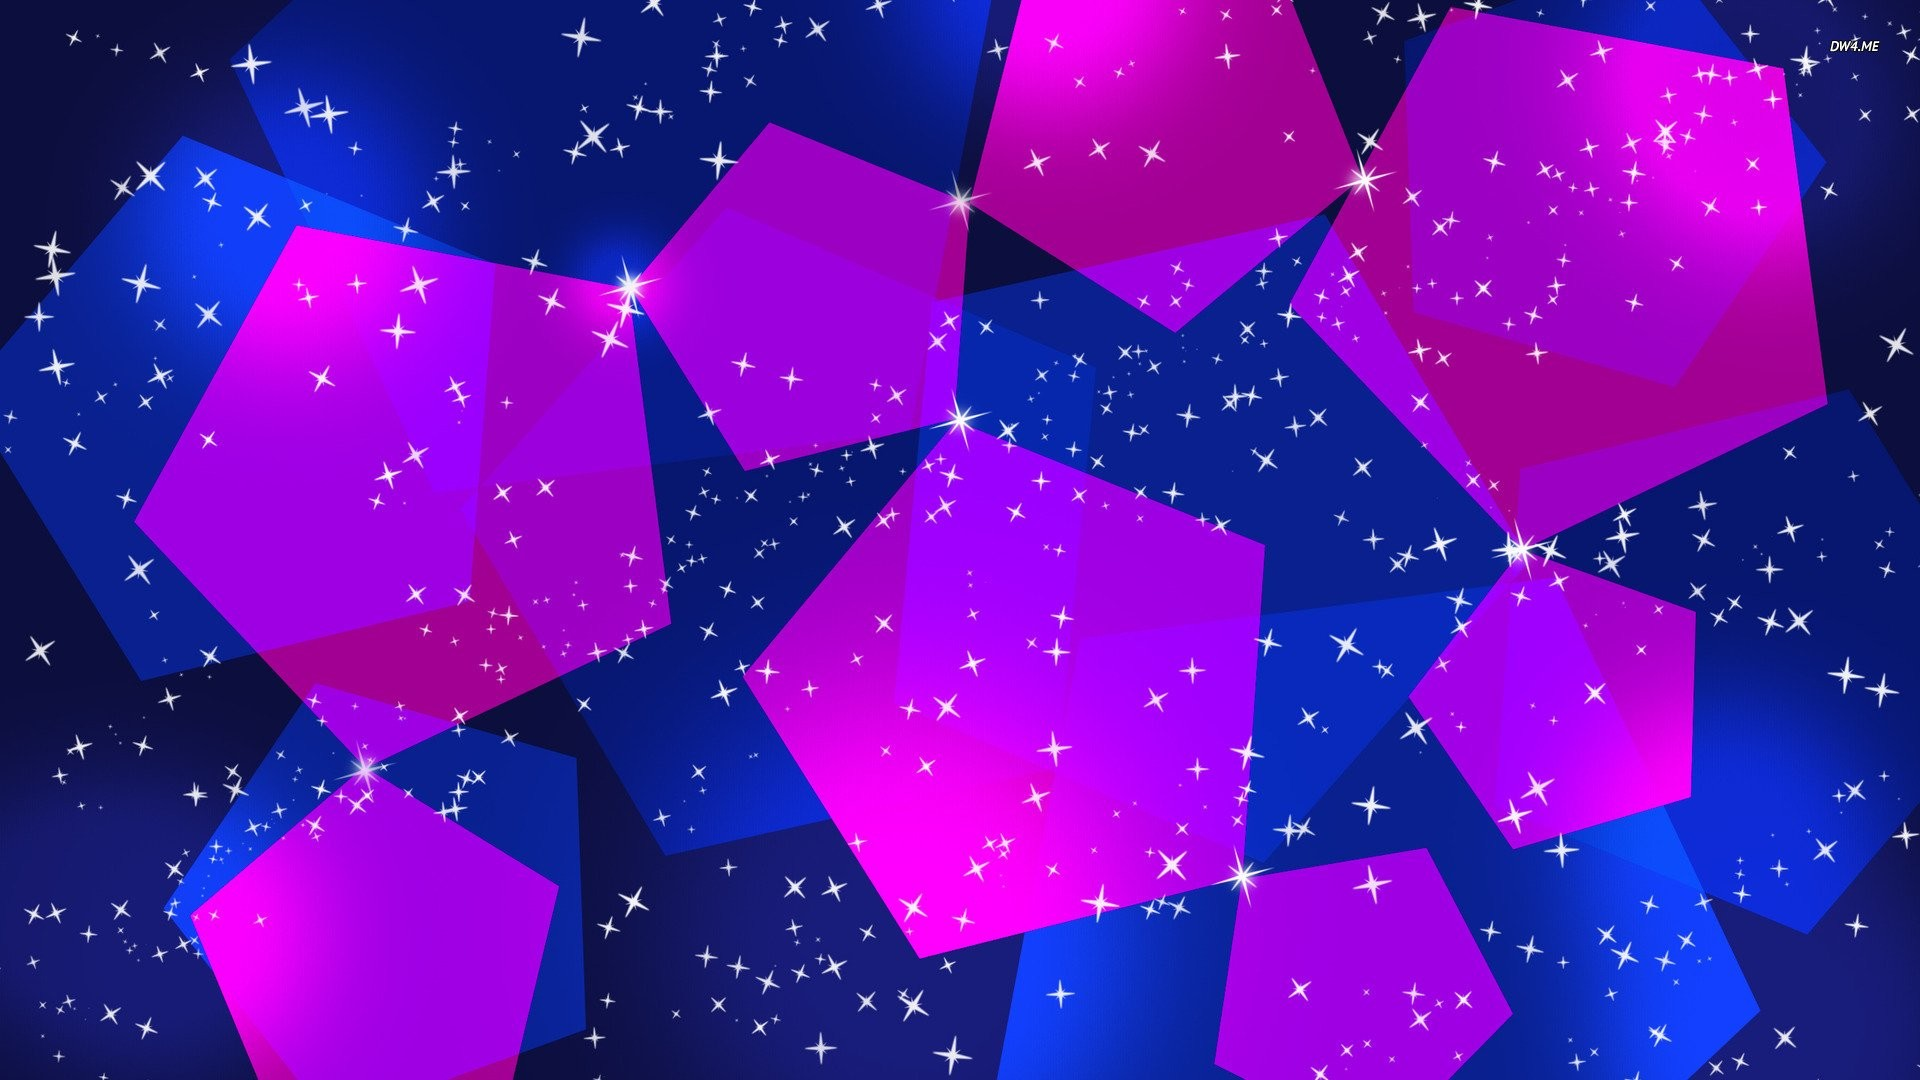 … backgrounds www 8backgrounds com; pink and blue 513498 walldevil …